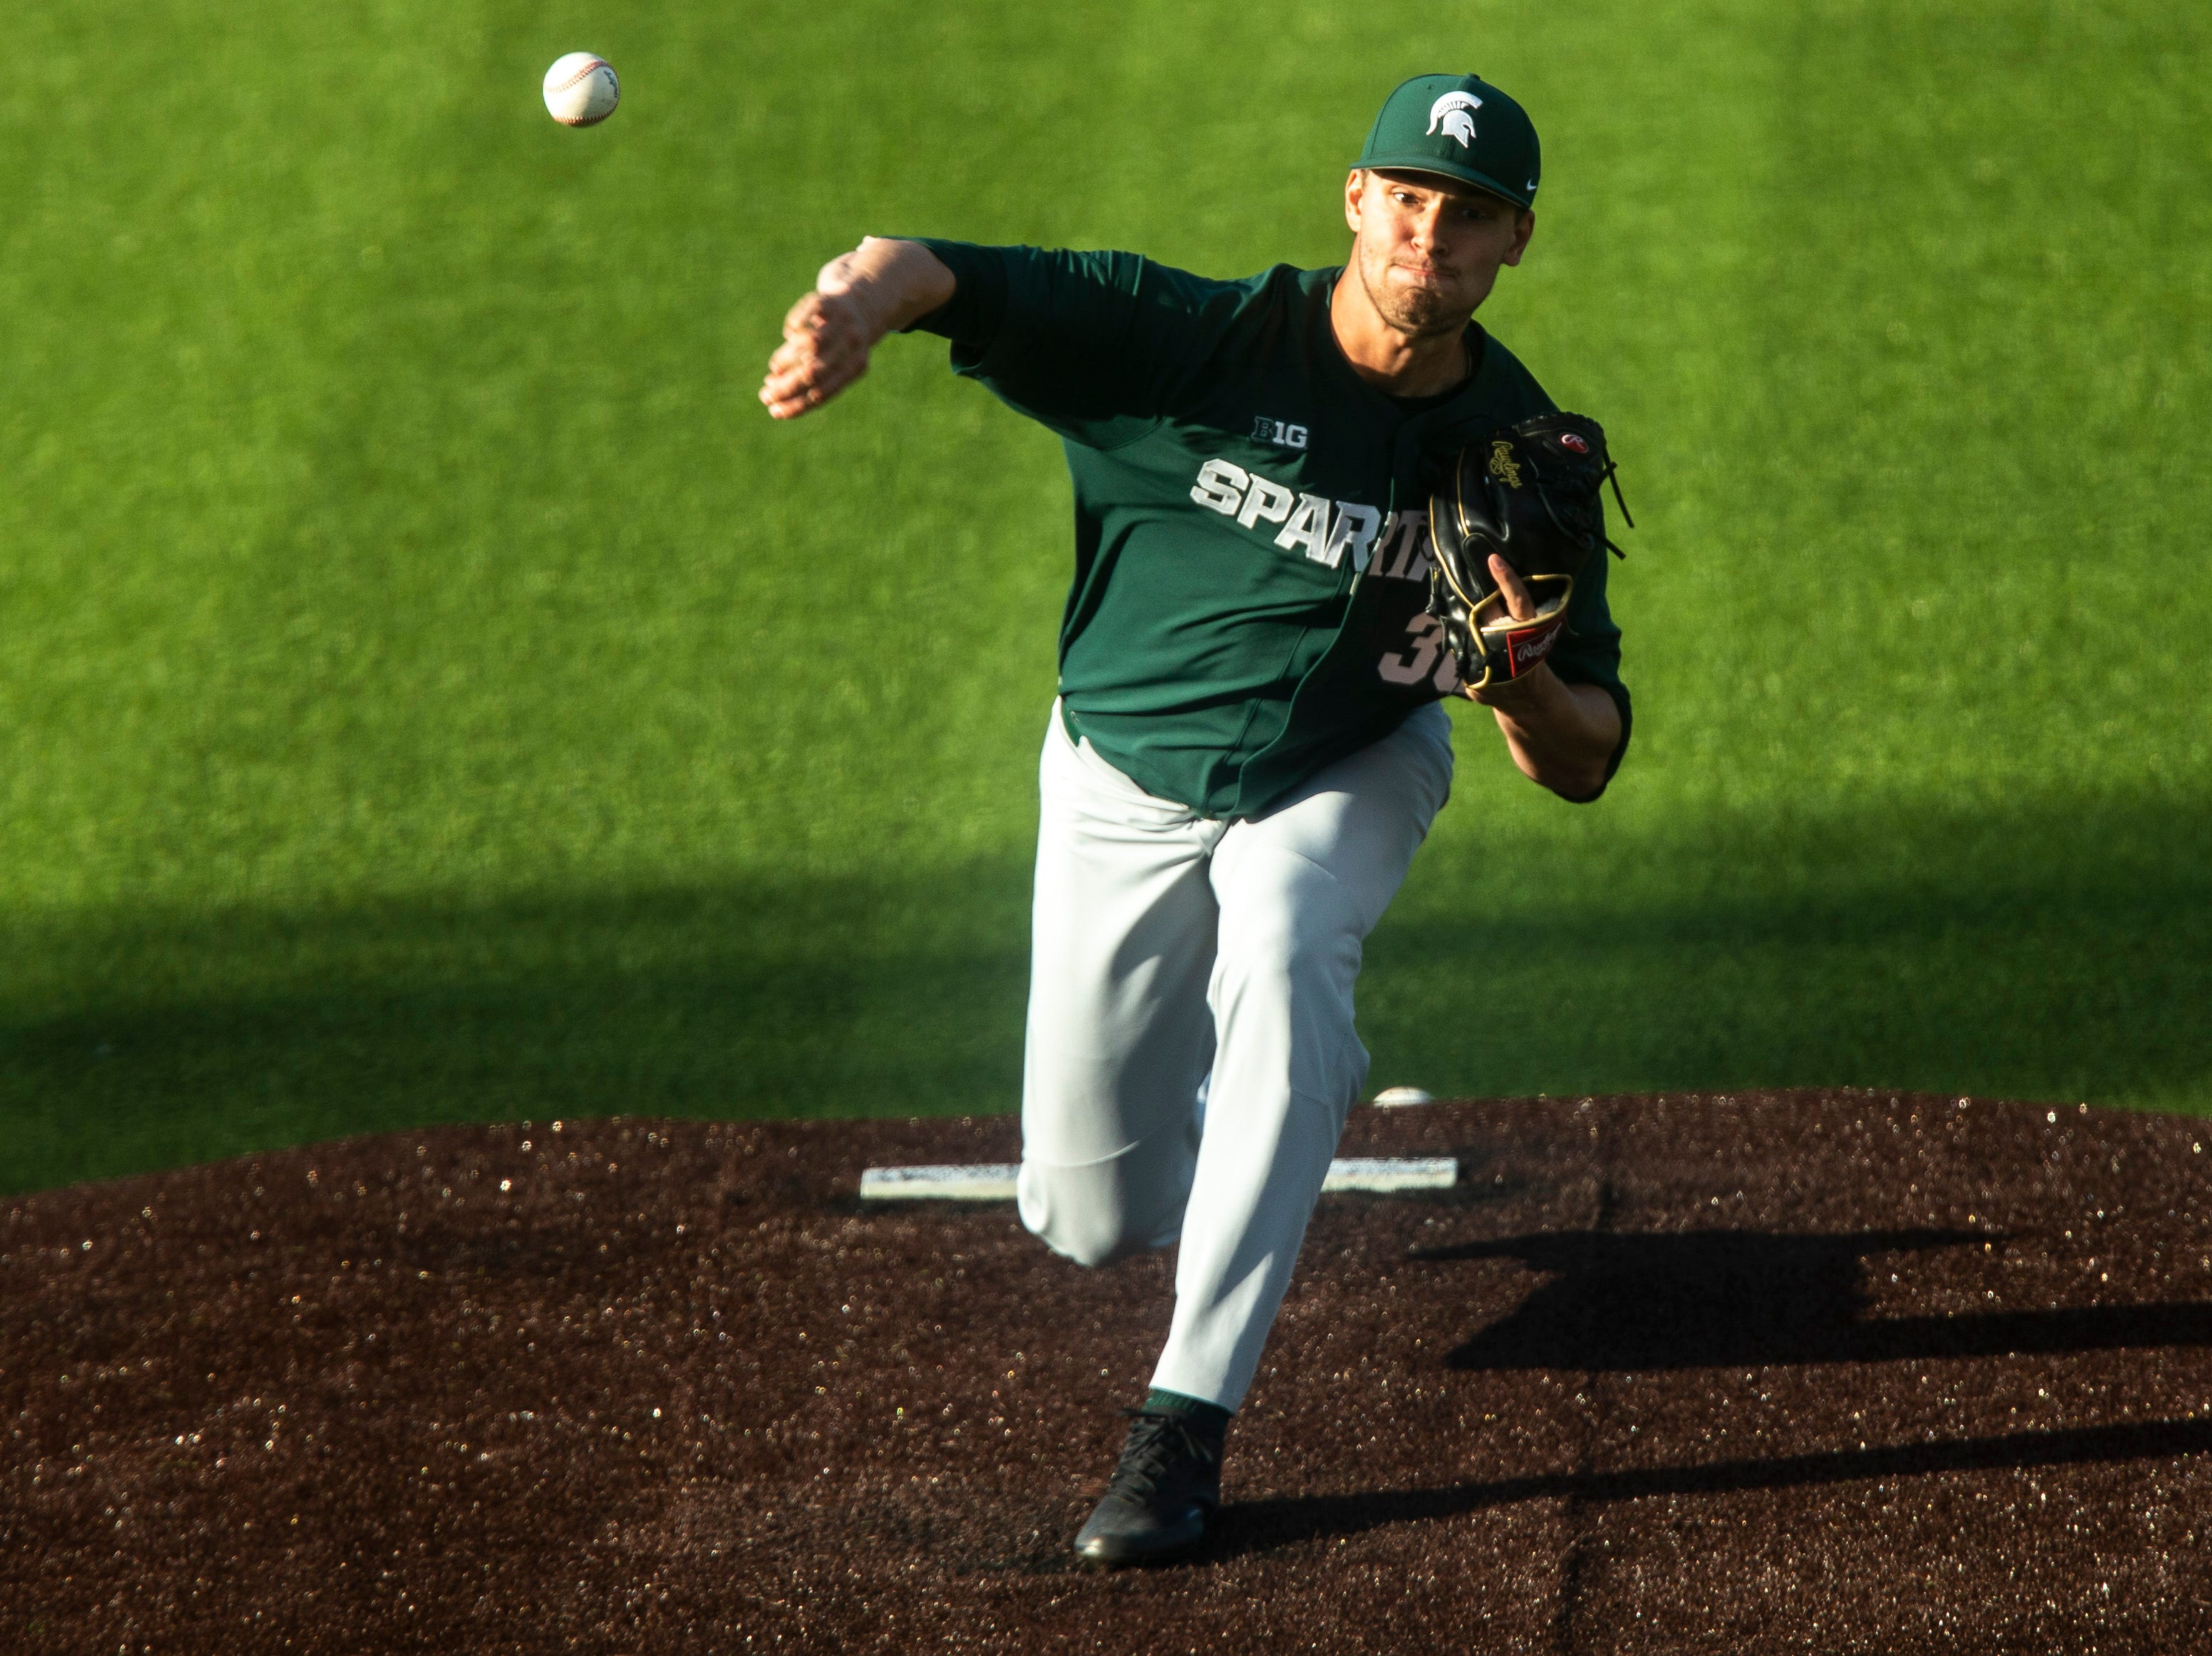 Michigan State's Mason Erla delivers a pitch during a NCAA Big Ten Conference baseball game, Friday, May 10, 2019, at Duane Banks Field on the University of Iowa campus in Iowa City, Iowa.